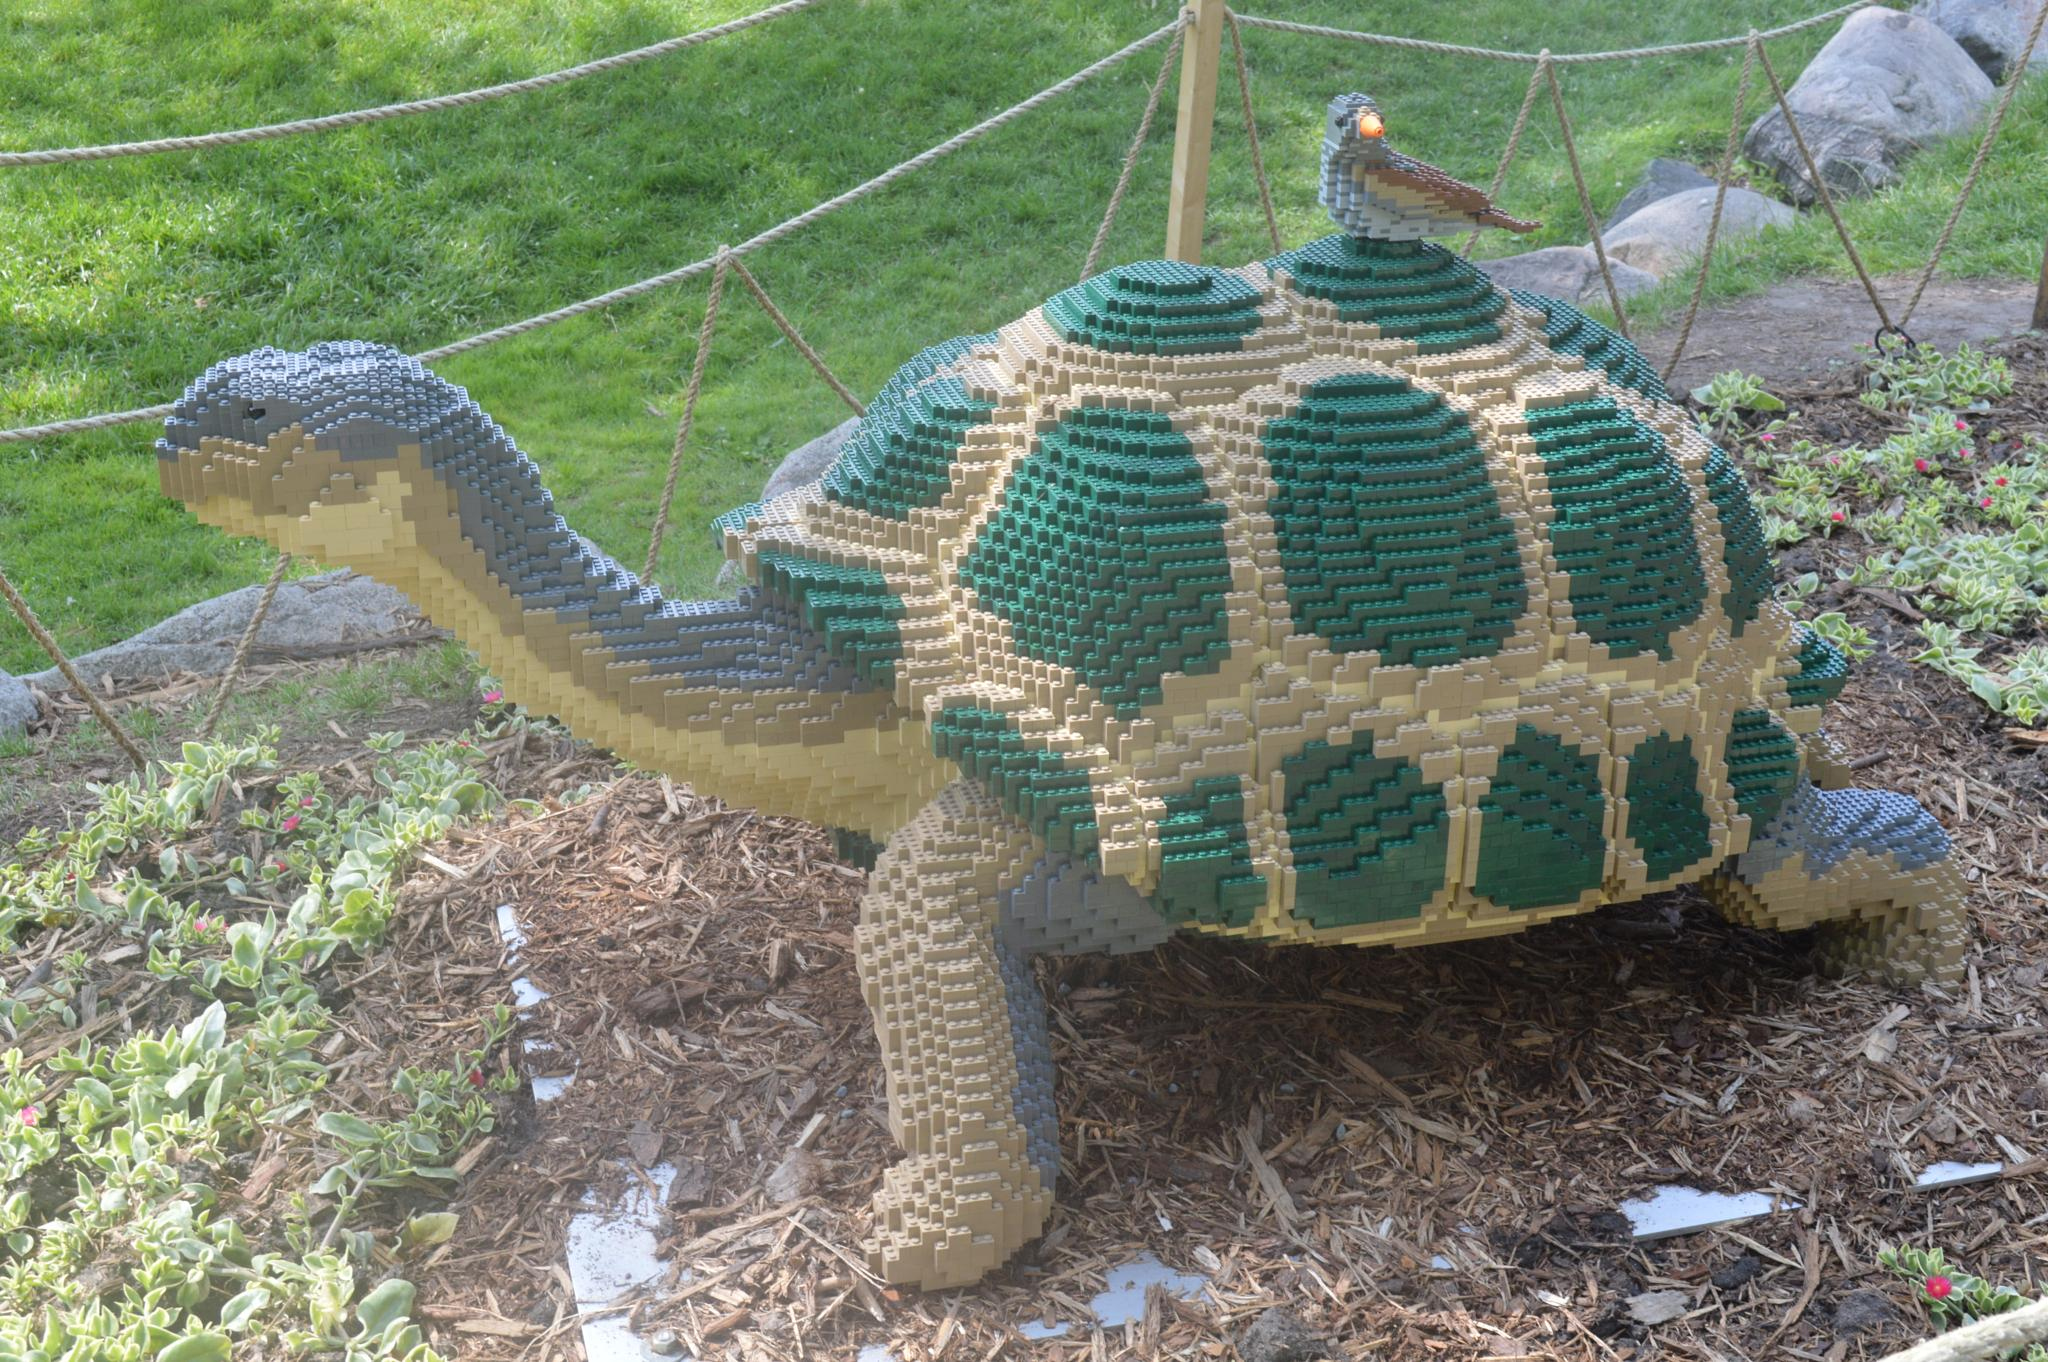 Lego Turtle by CLCampbell